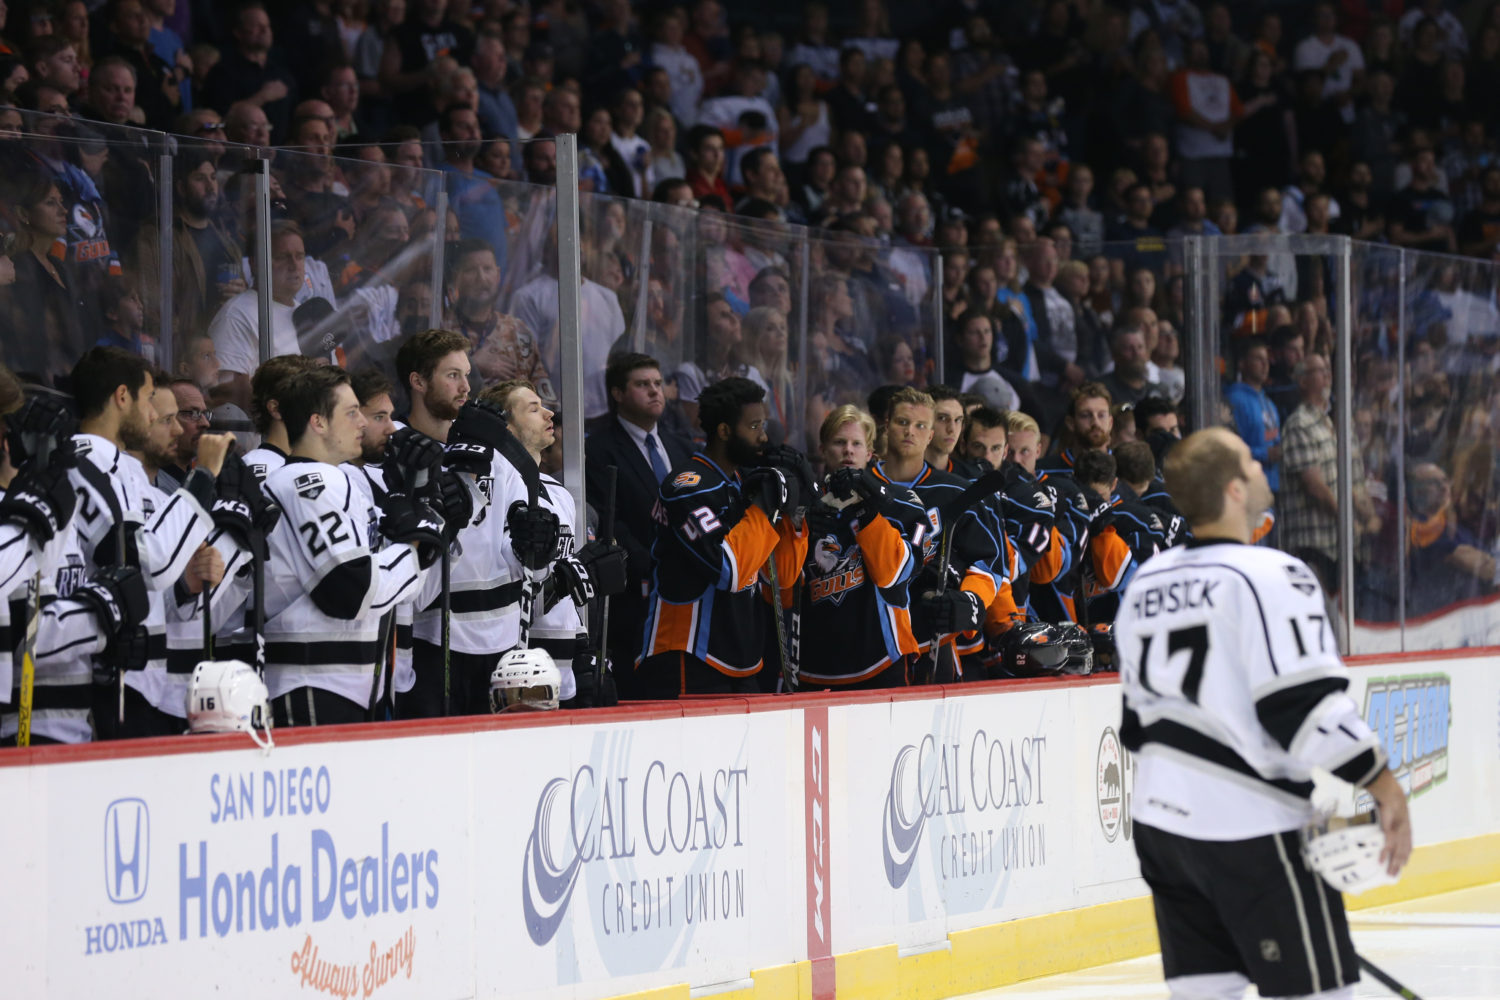 Game 5 San Diego 4 Reign 1 Postgame Notes Video La Kings Insider